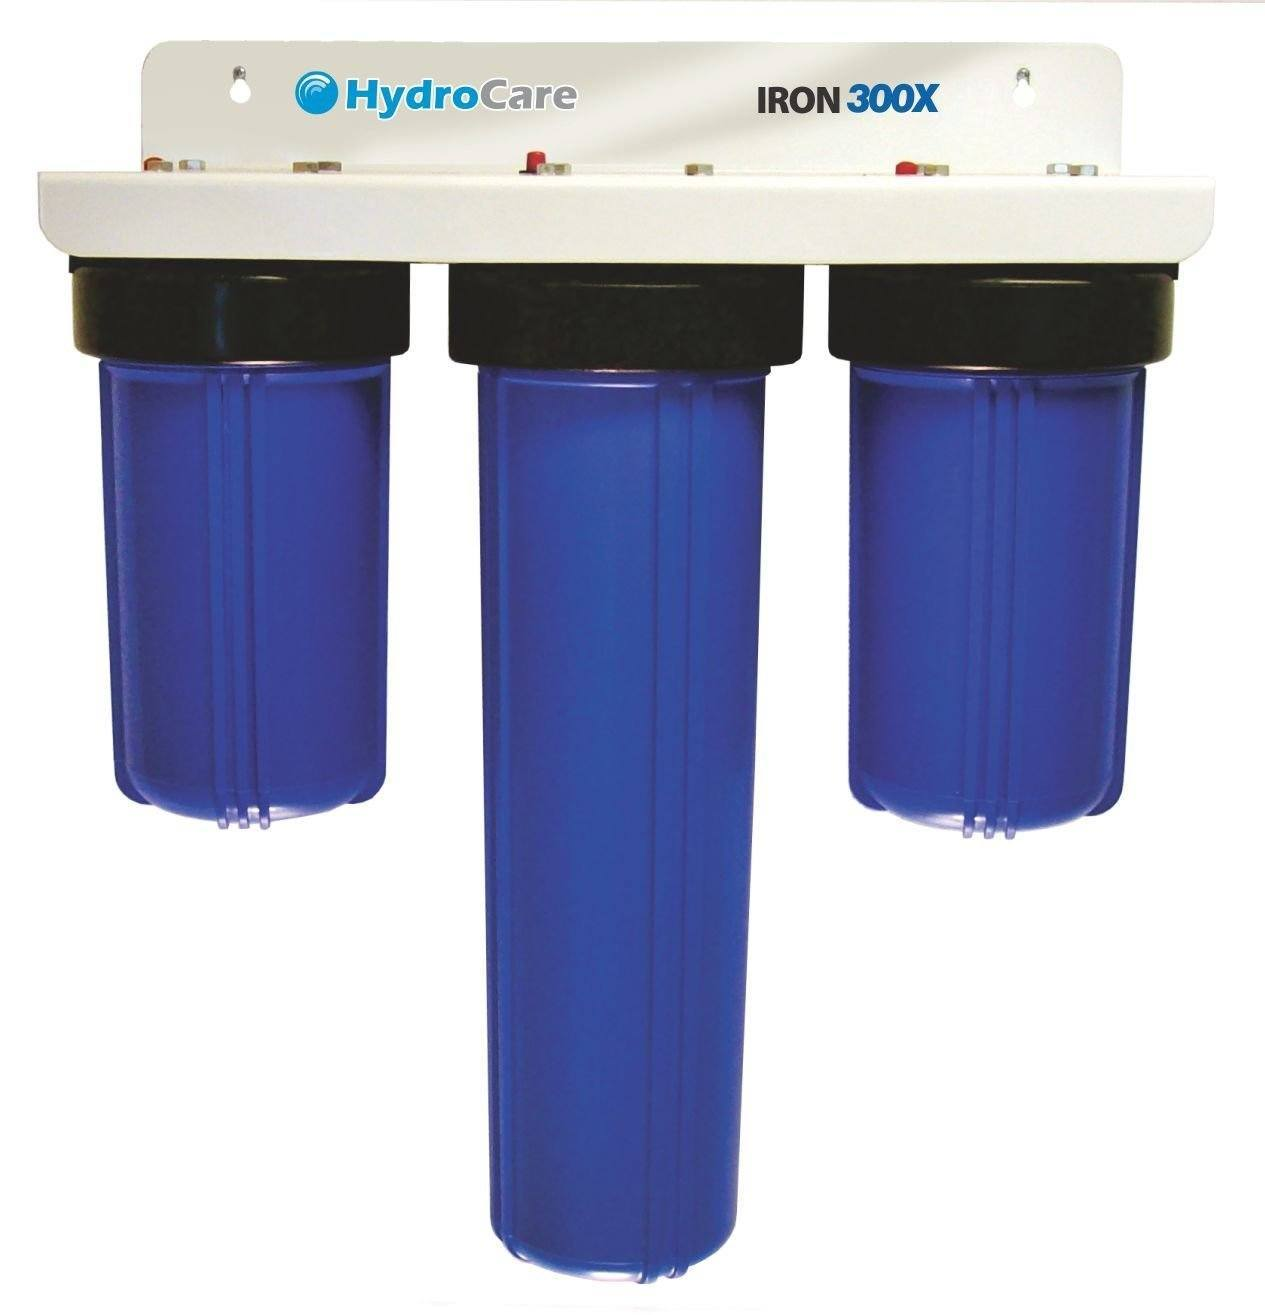 HydroCare HC-300X Iron Well Water Filtration